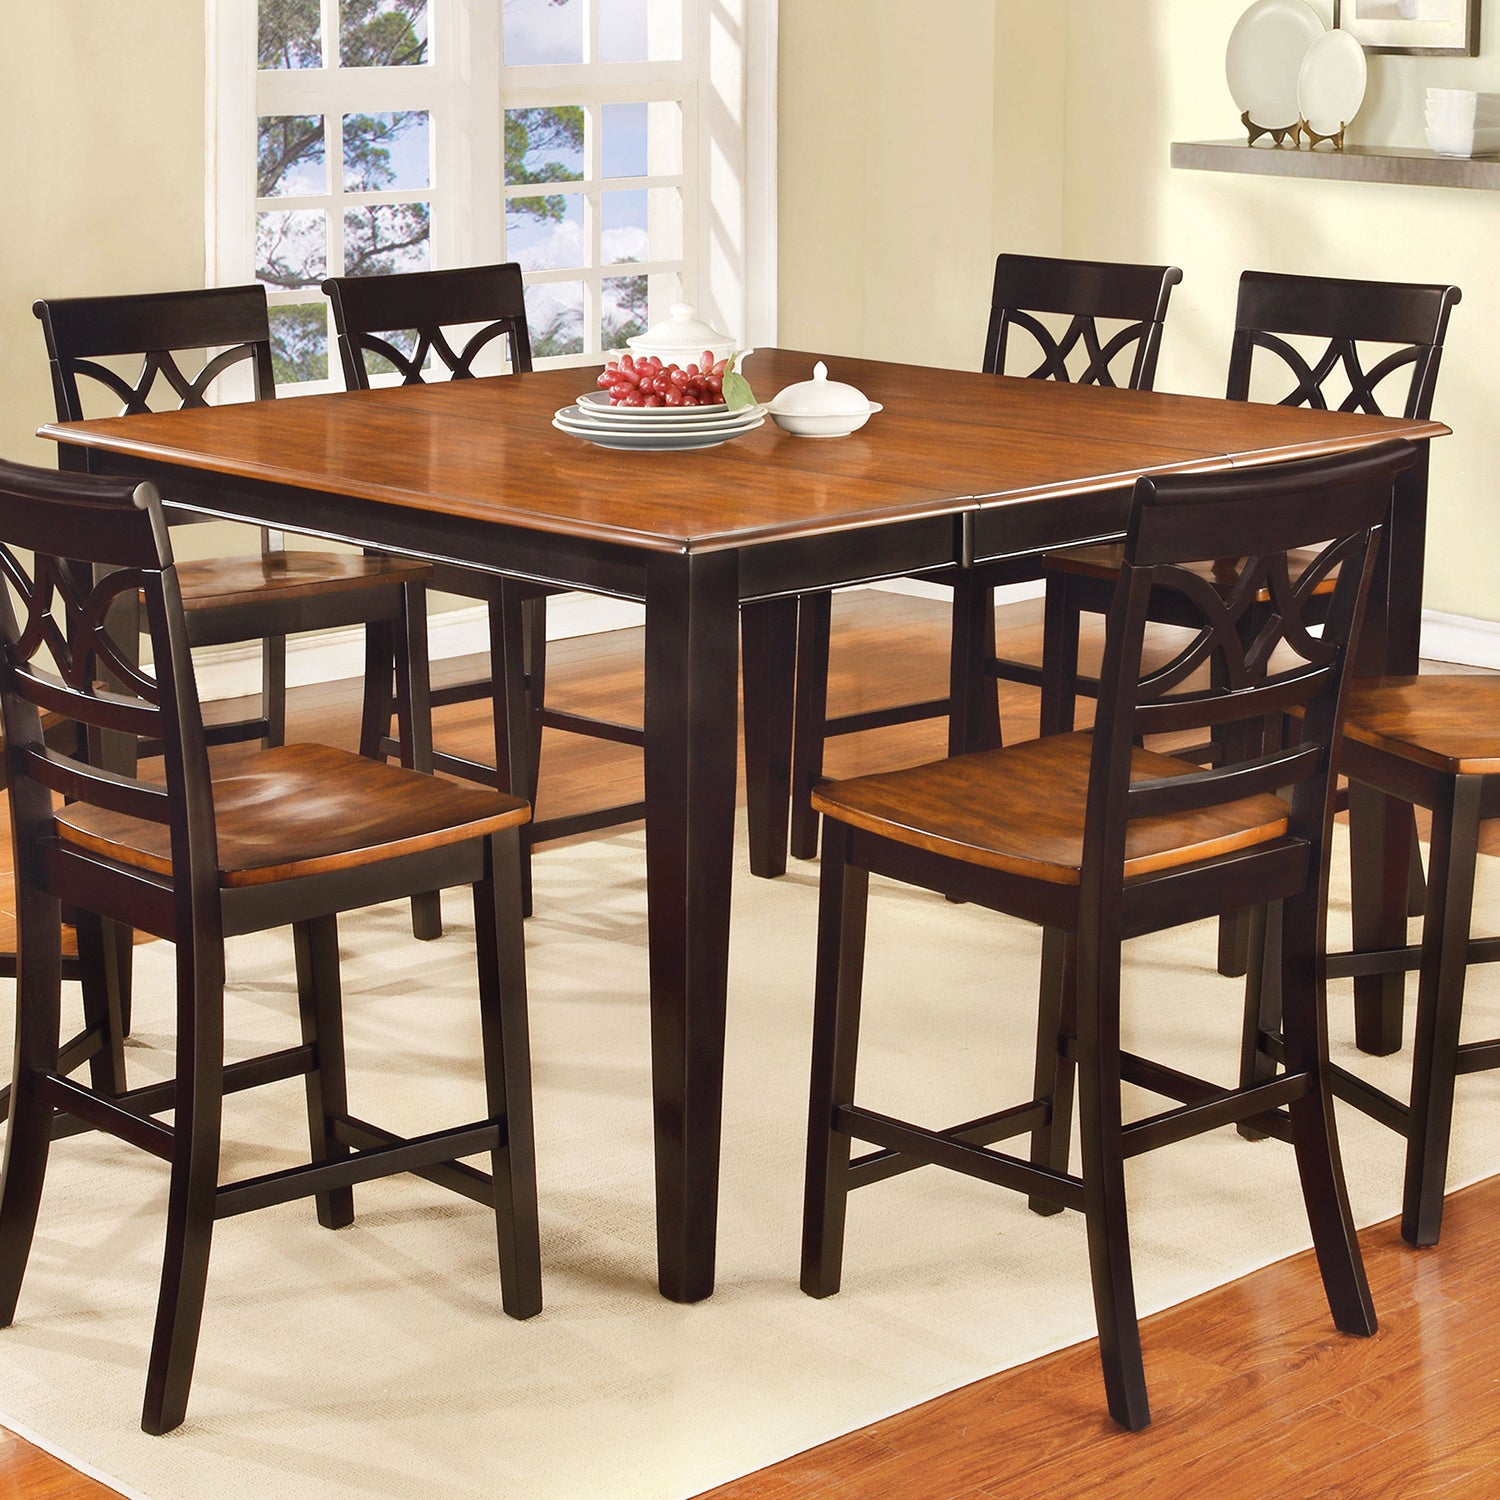 Delightful Furniture Of America Betsy Joan Two Tone Counter Height Dining Table